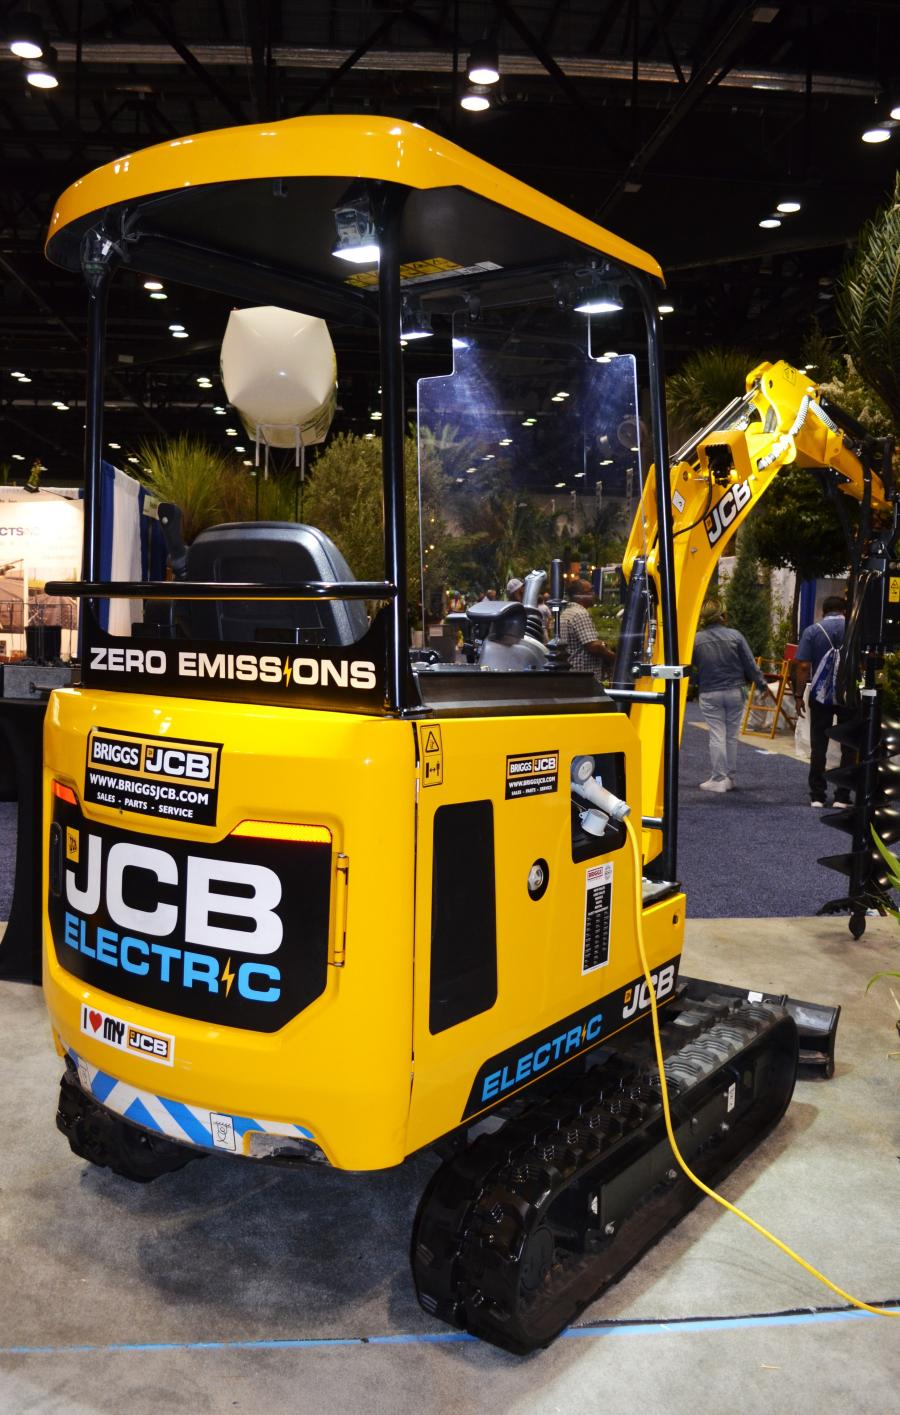 On the showroom floor in the Briggs JCB exhibit area was the only zero emissions electric mini-excavator in the show.